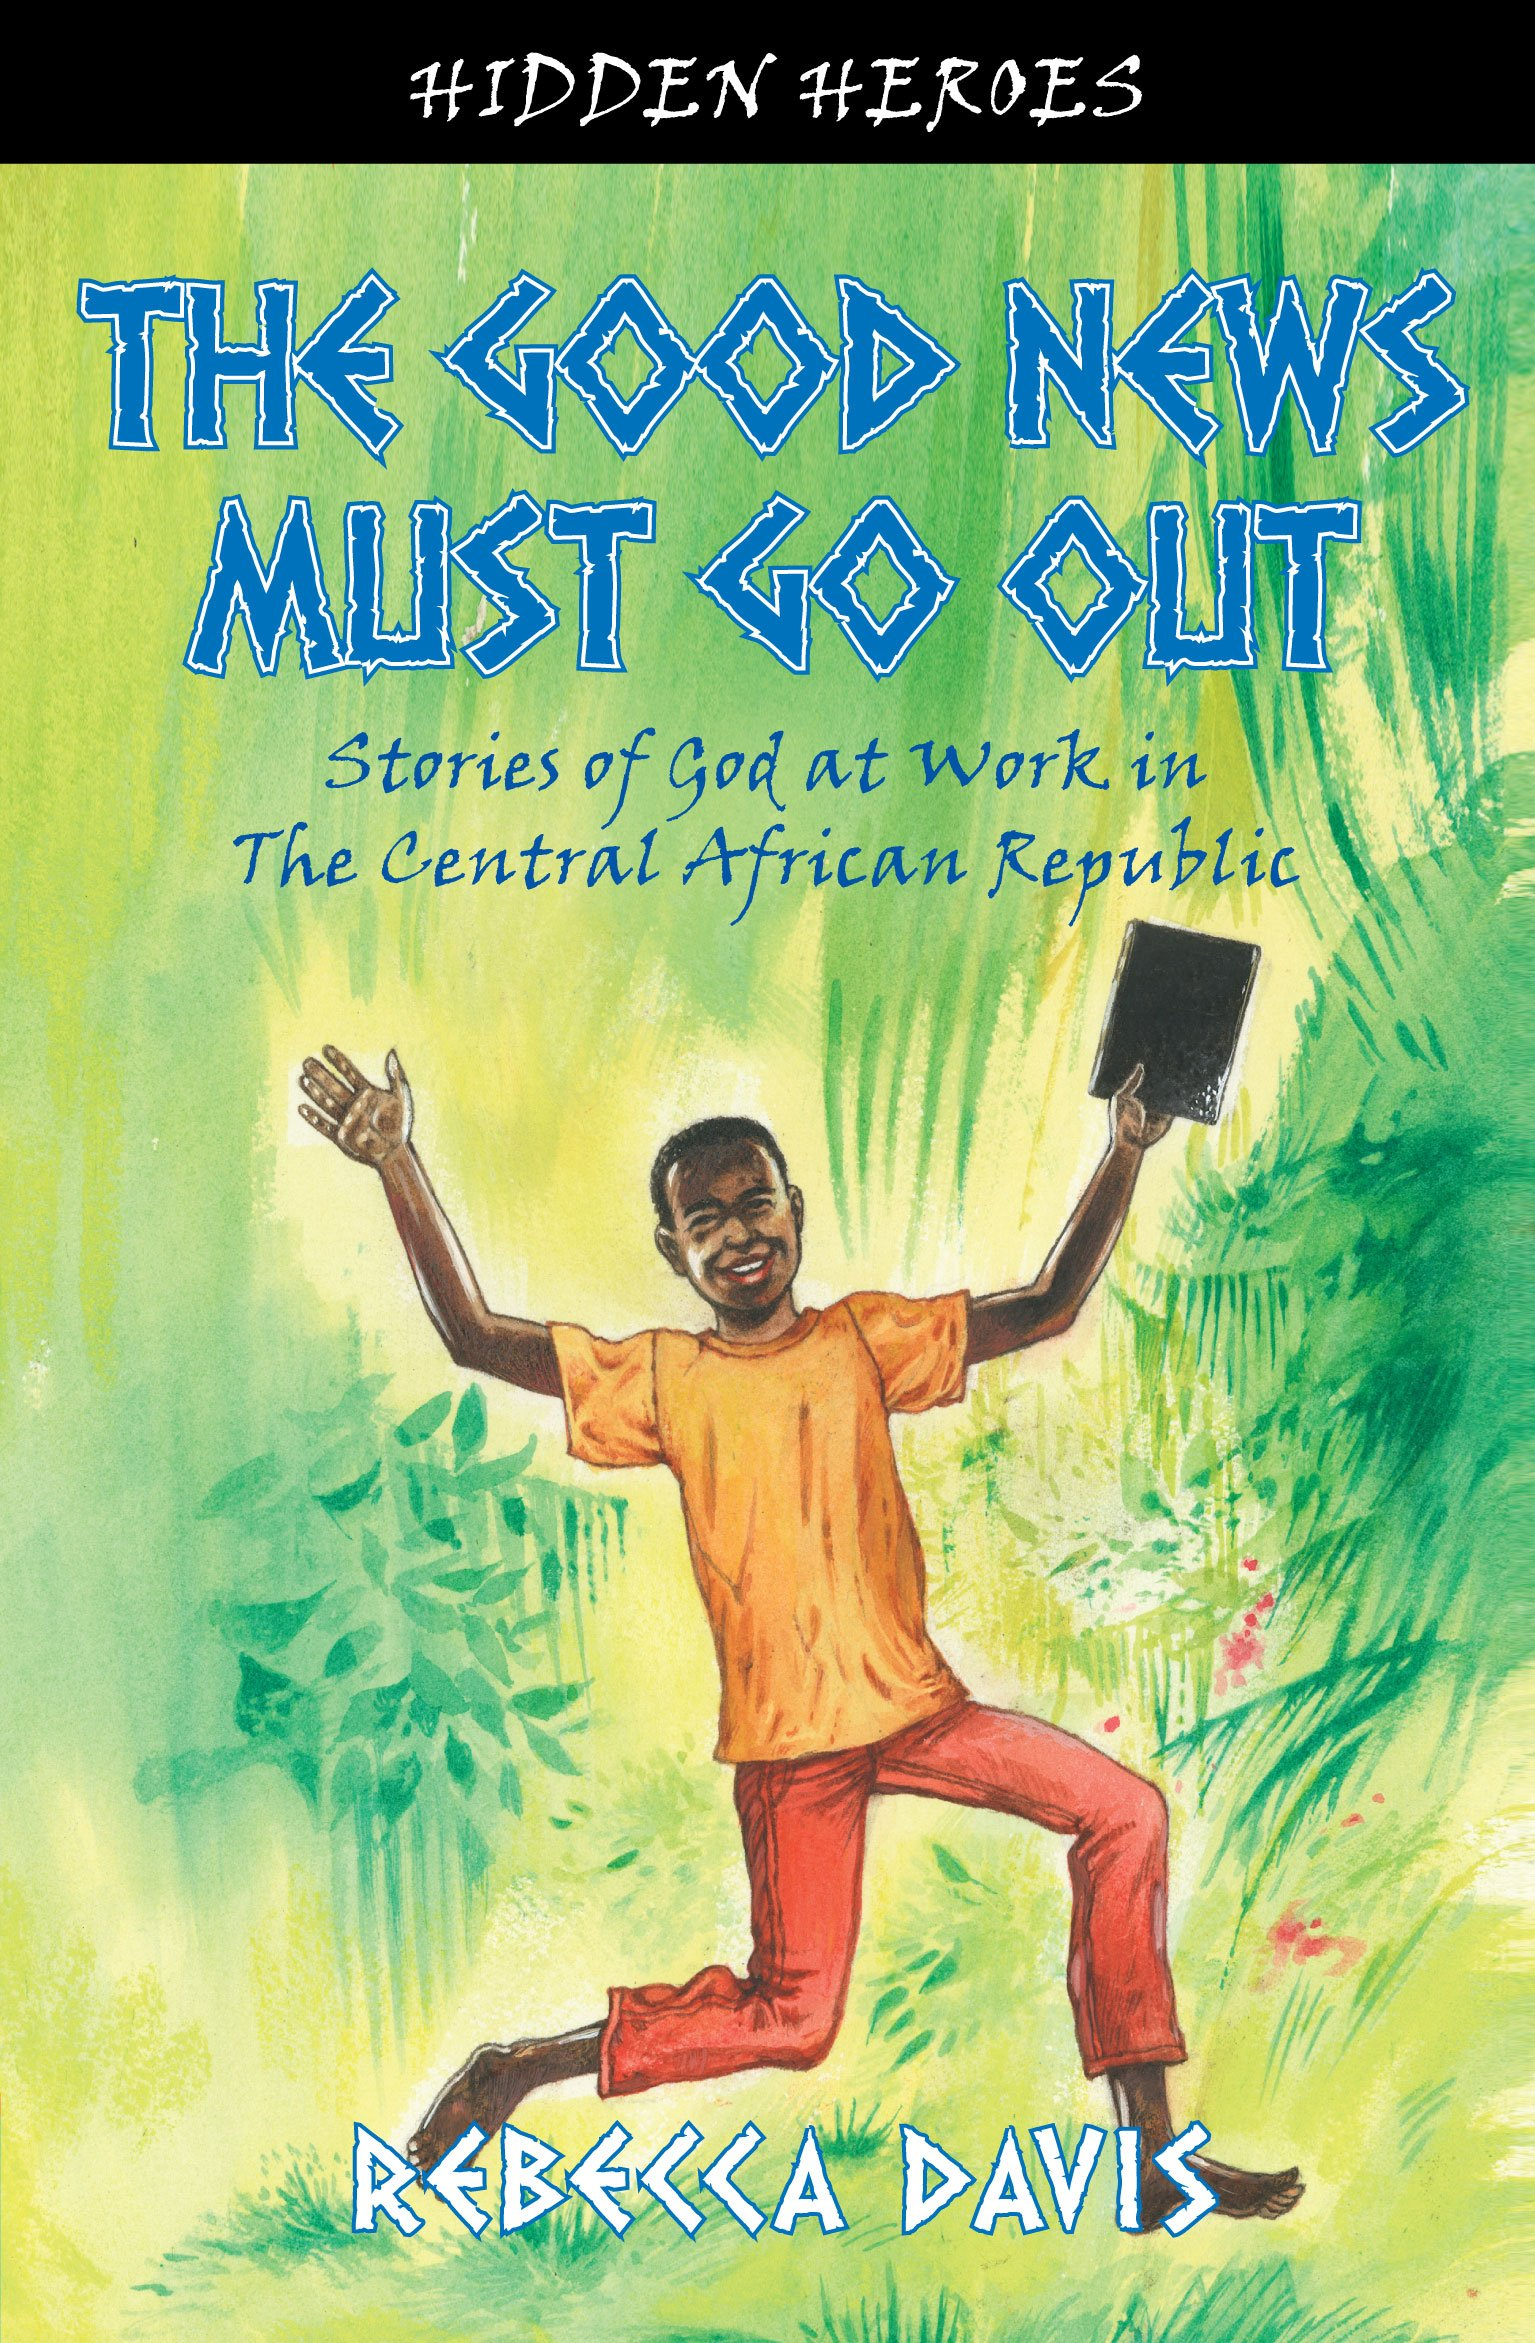 The Good News Must Go Out: True Stories Of God At Work In The Central  African Republic (hidden Heroes): Rebecca Davis: 9781845506285: Amazon:  Books